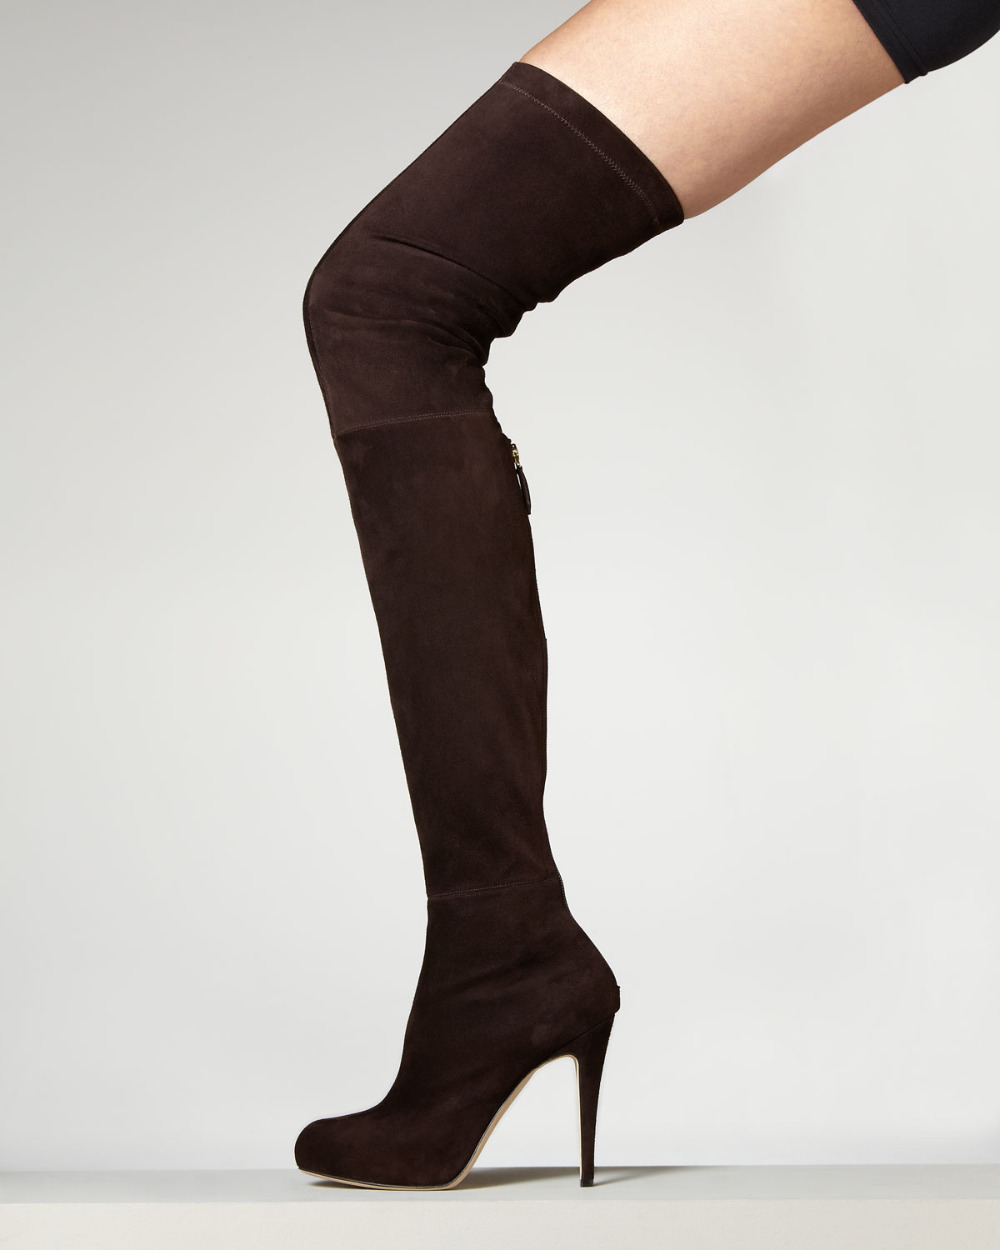 BC Sexy Brown Suede Round Toe Stiletto High Heel Over The Knee Thigh High Women Boots <br><br>Aliexpress